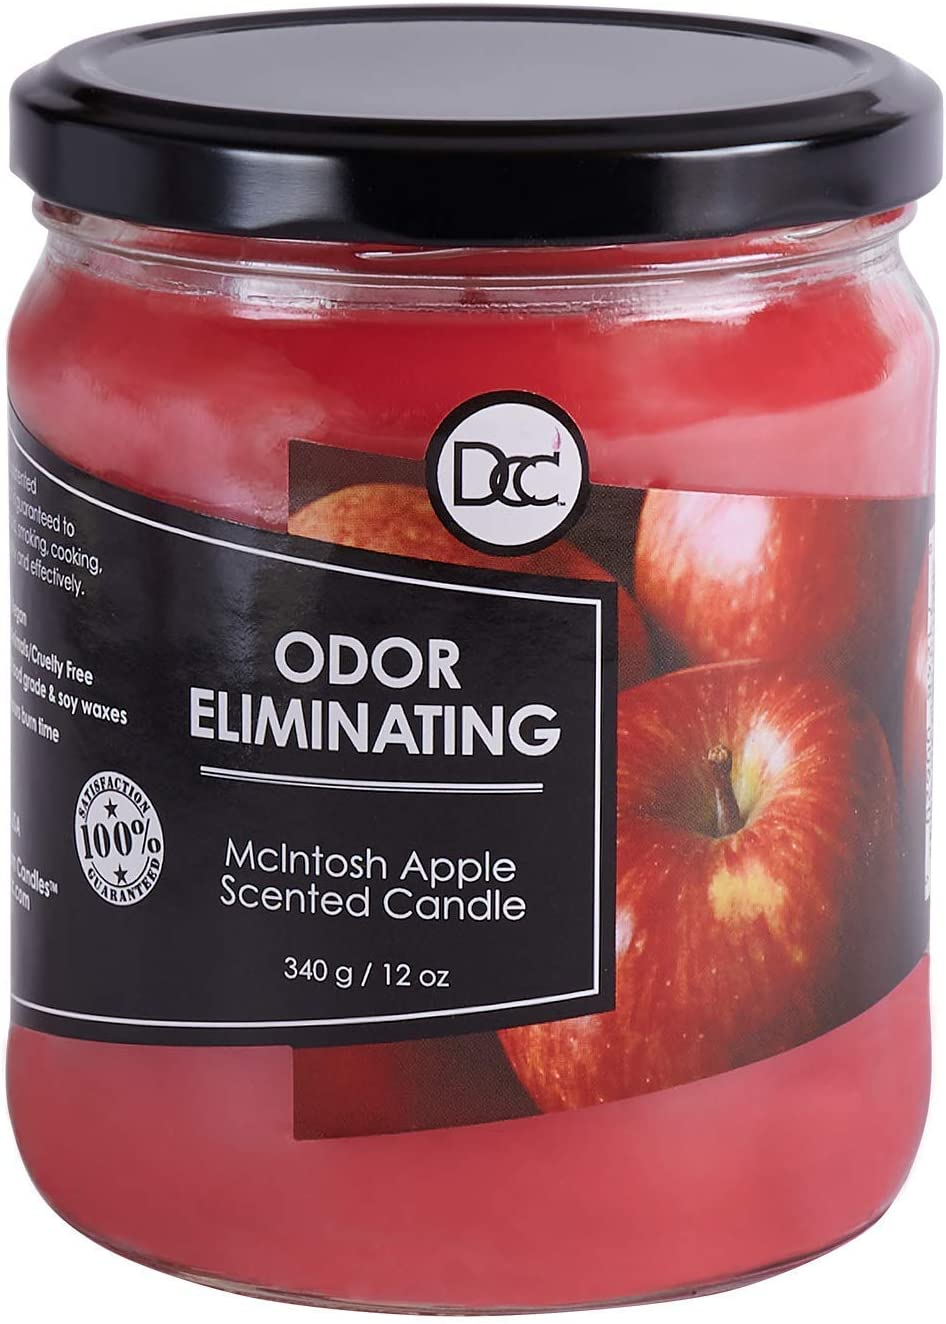 McIntosh Apple Candle - Odor Eliminating Highly Fragranced Candle - Eliminates 95% of Pet, Smoke, Food, and Other Smells Quickly - Up to 80 Hour Burn time - 12 Ounce Premium Soy Blend